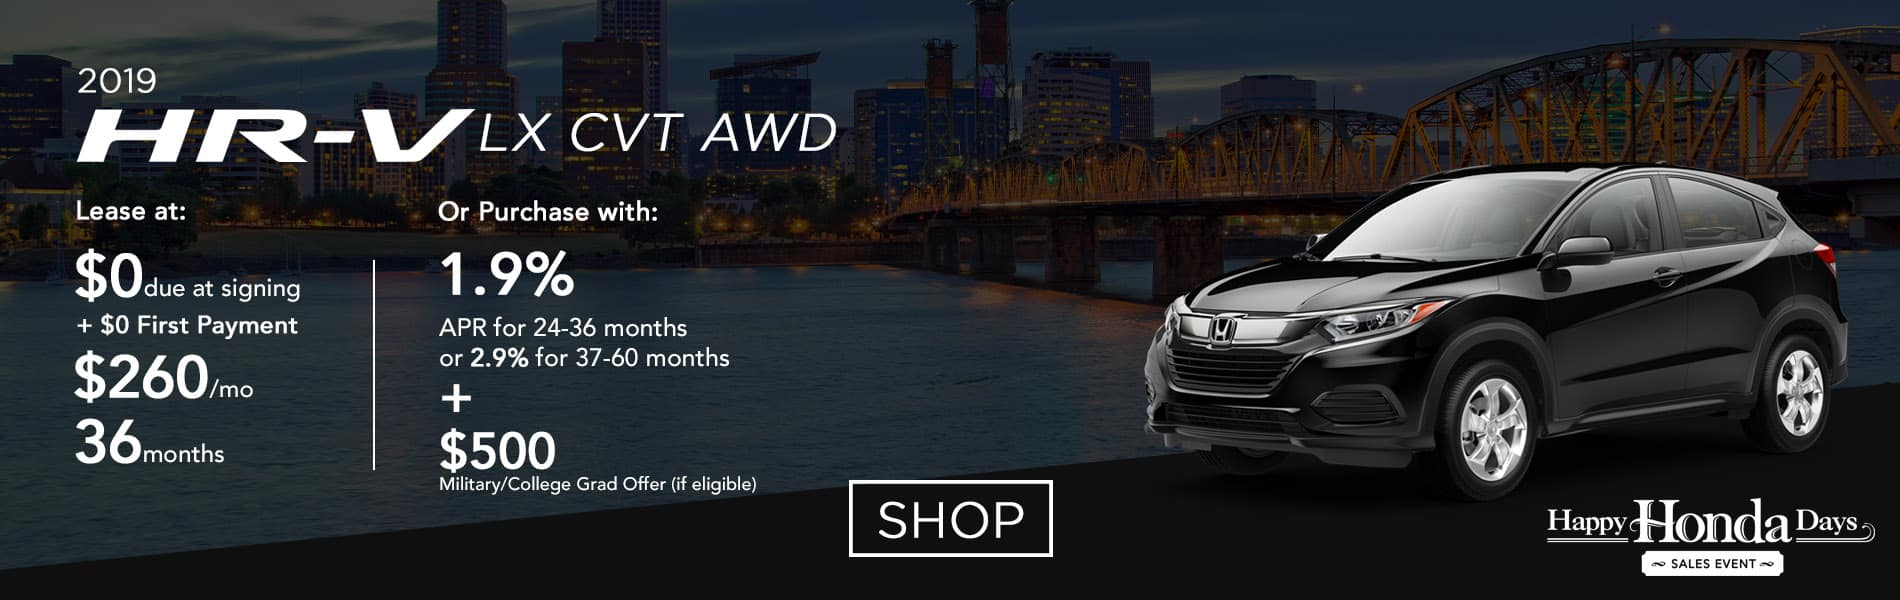 Lease a 2019 HR-V LX CVT AWD for $260 per month or purchase with 1.9% APR up to 36 months